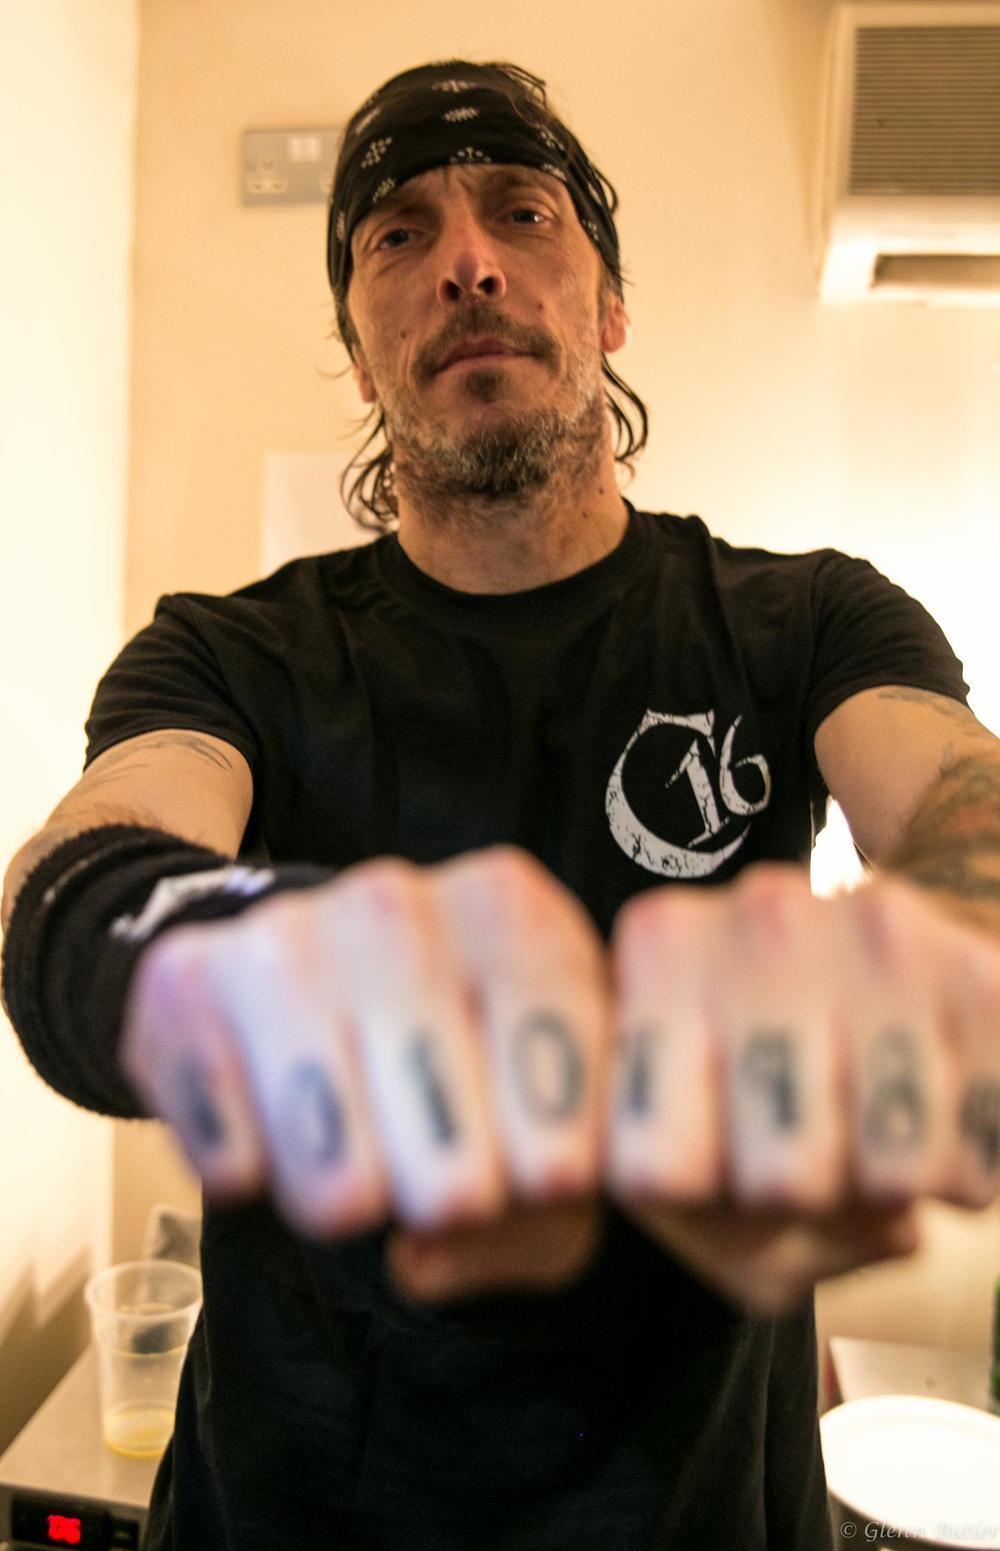 Derek Tailer (Overkill)  Wearing the Men's C16 logo shirt